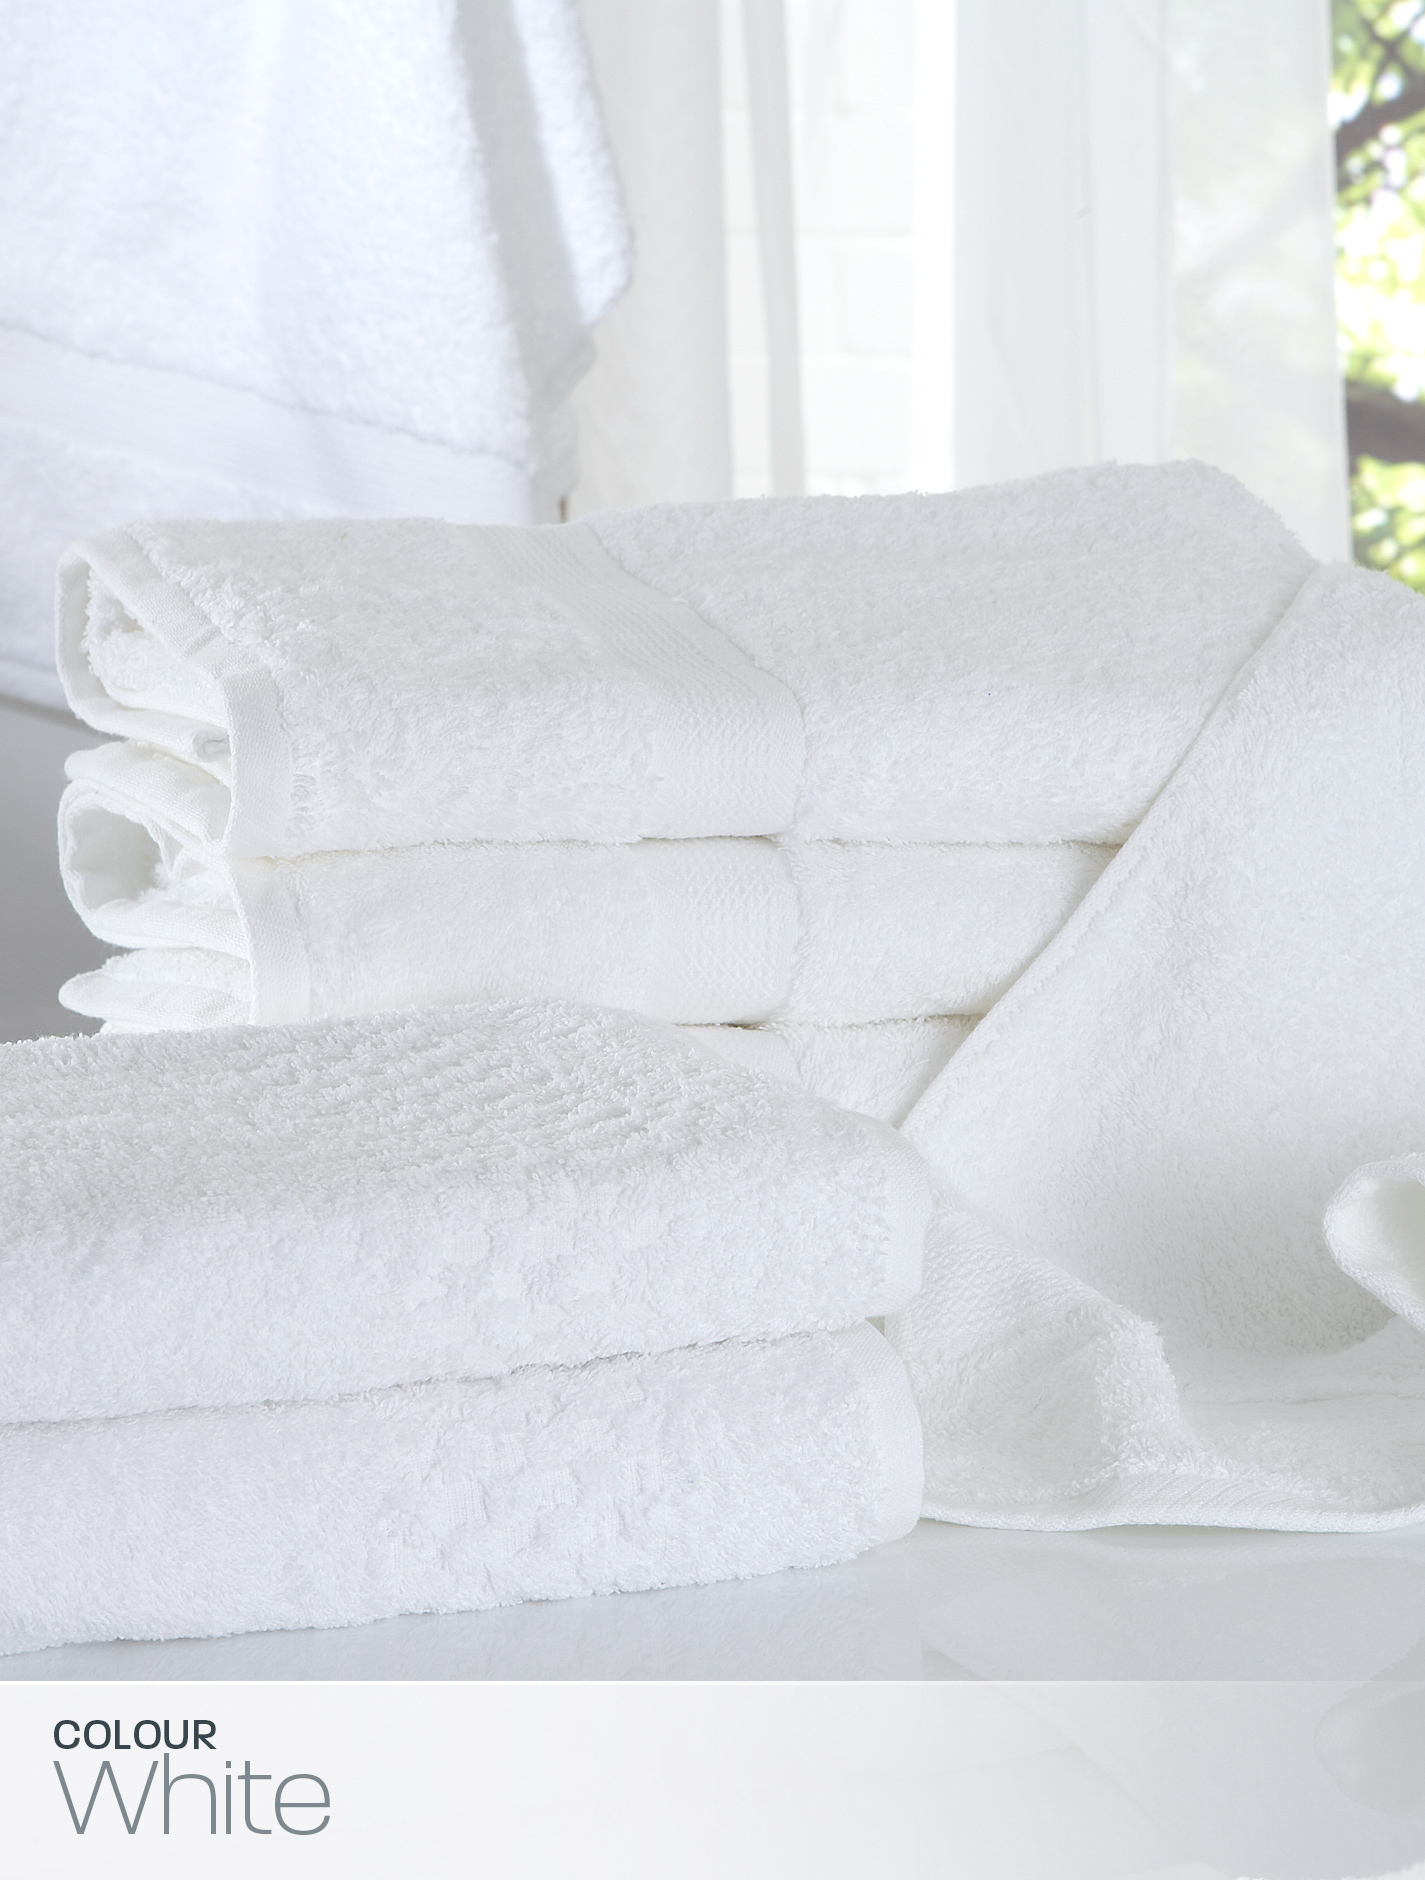 Actil White Super Deluxe Towels Bath Sheet Accommodation Linen